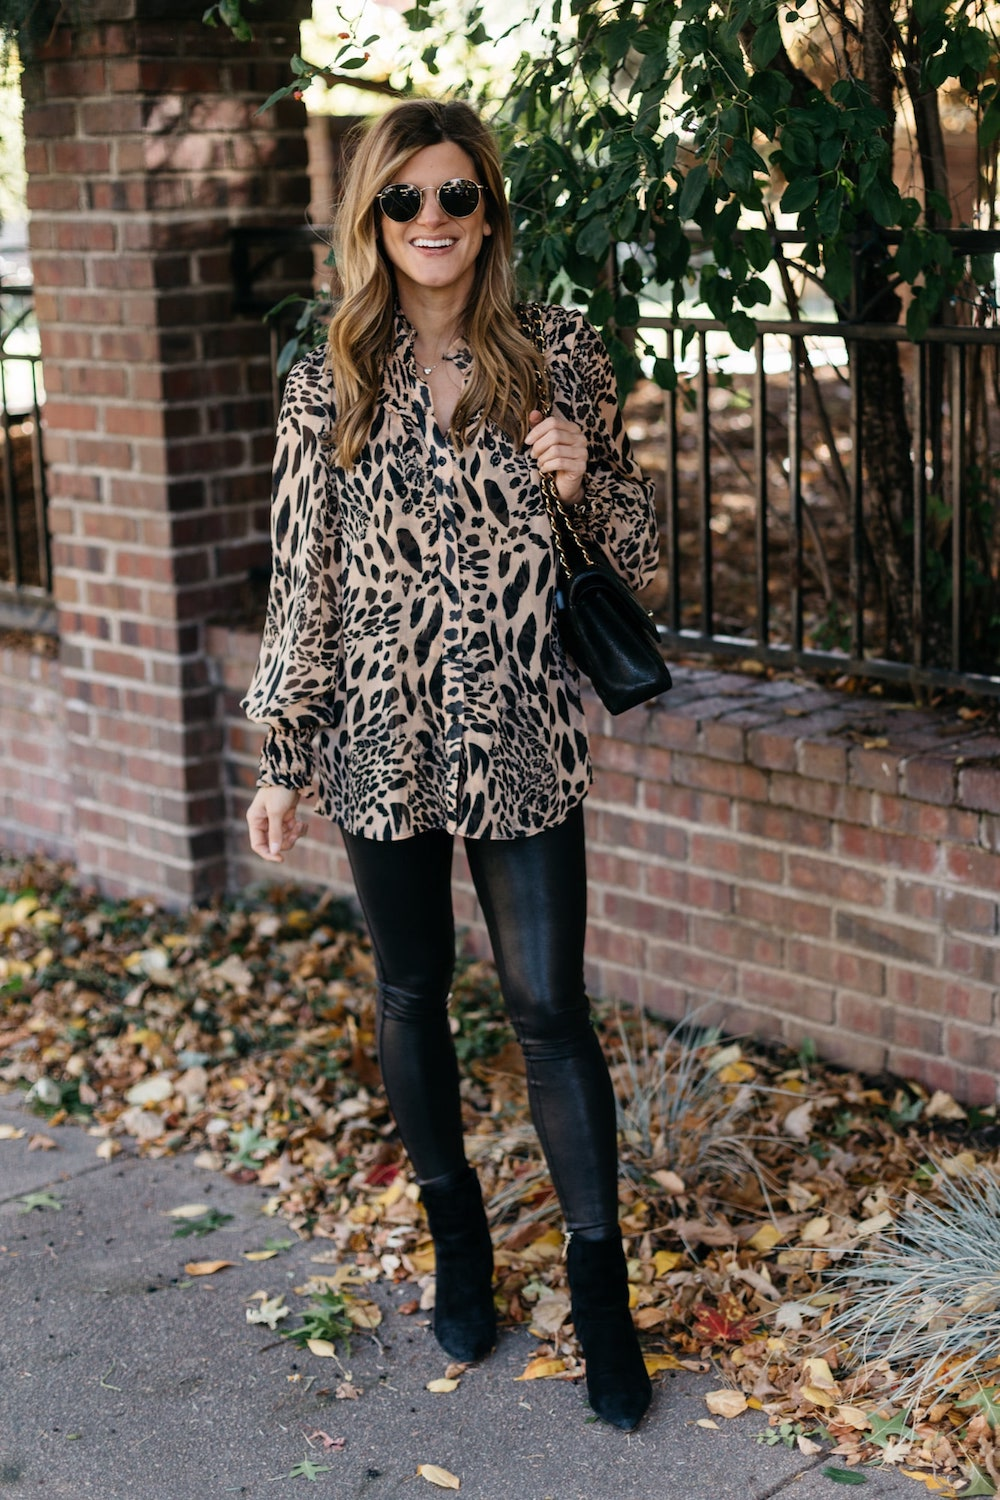 Brighton butler wearing Spanx faux leather leggings with Topshop Animal print top